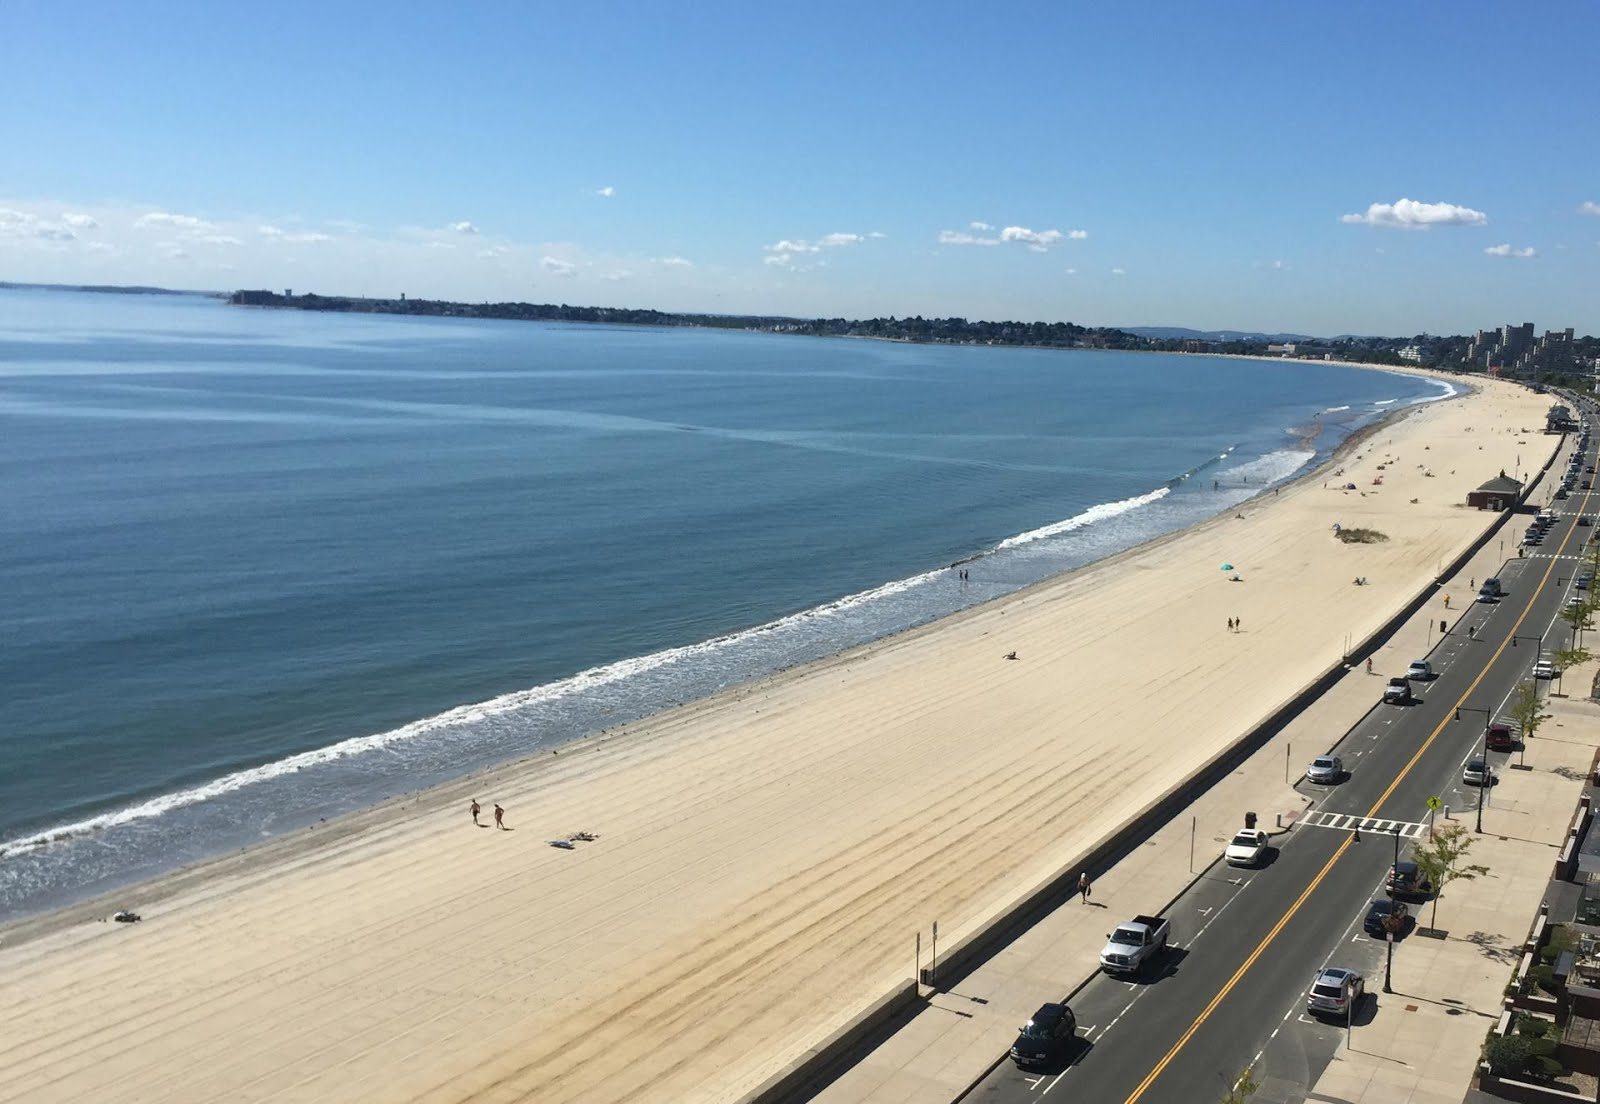 Revere Beach In Machusetts Is One Of The Nicest Beaches Around Boston That You Can Easily Access By Public Transportation